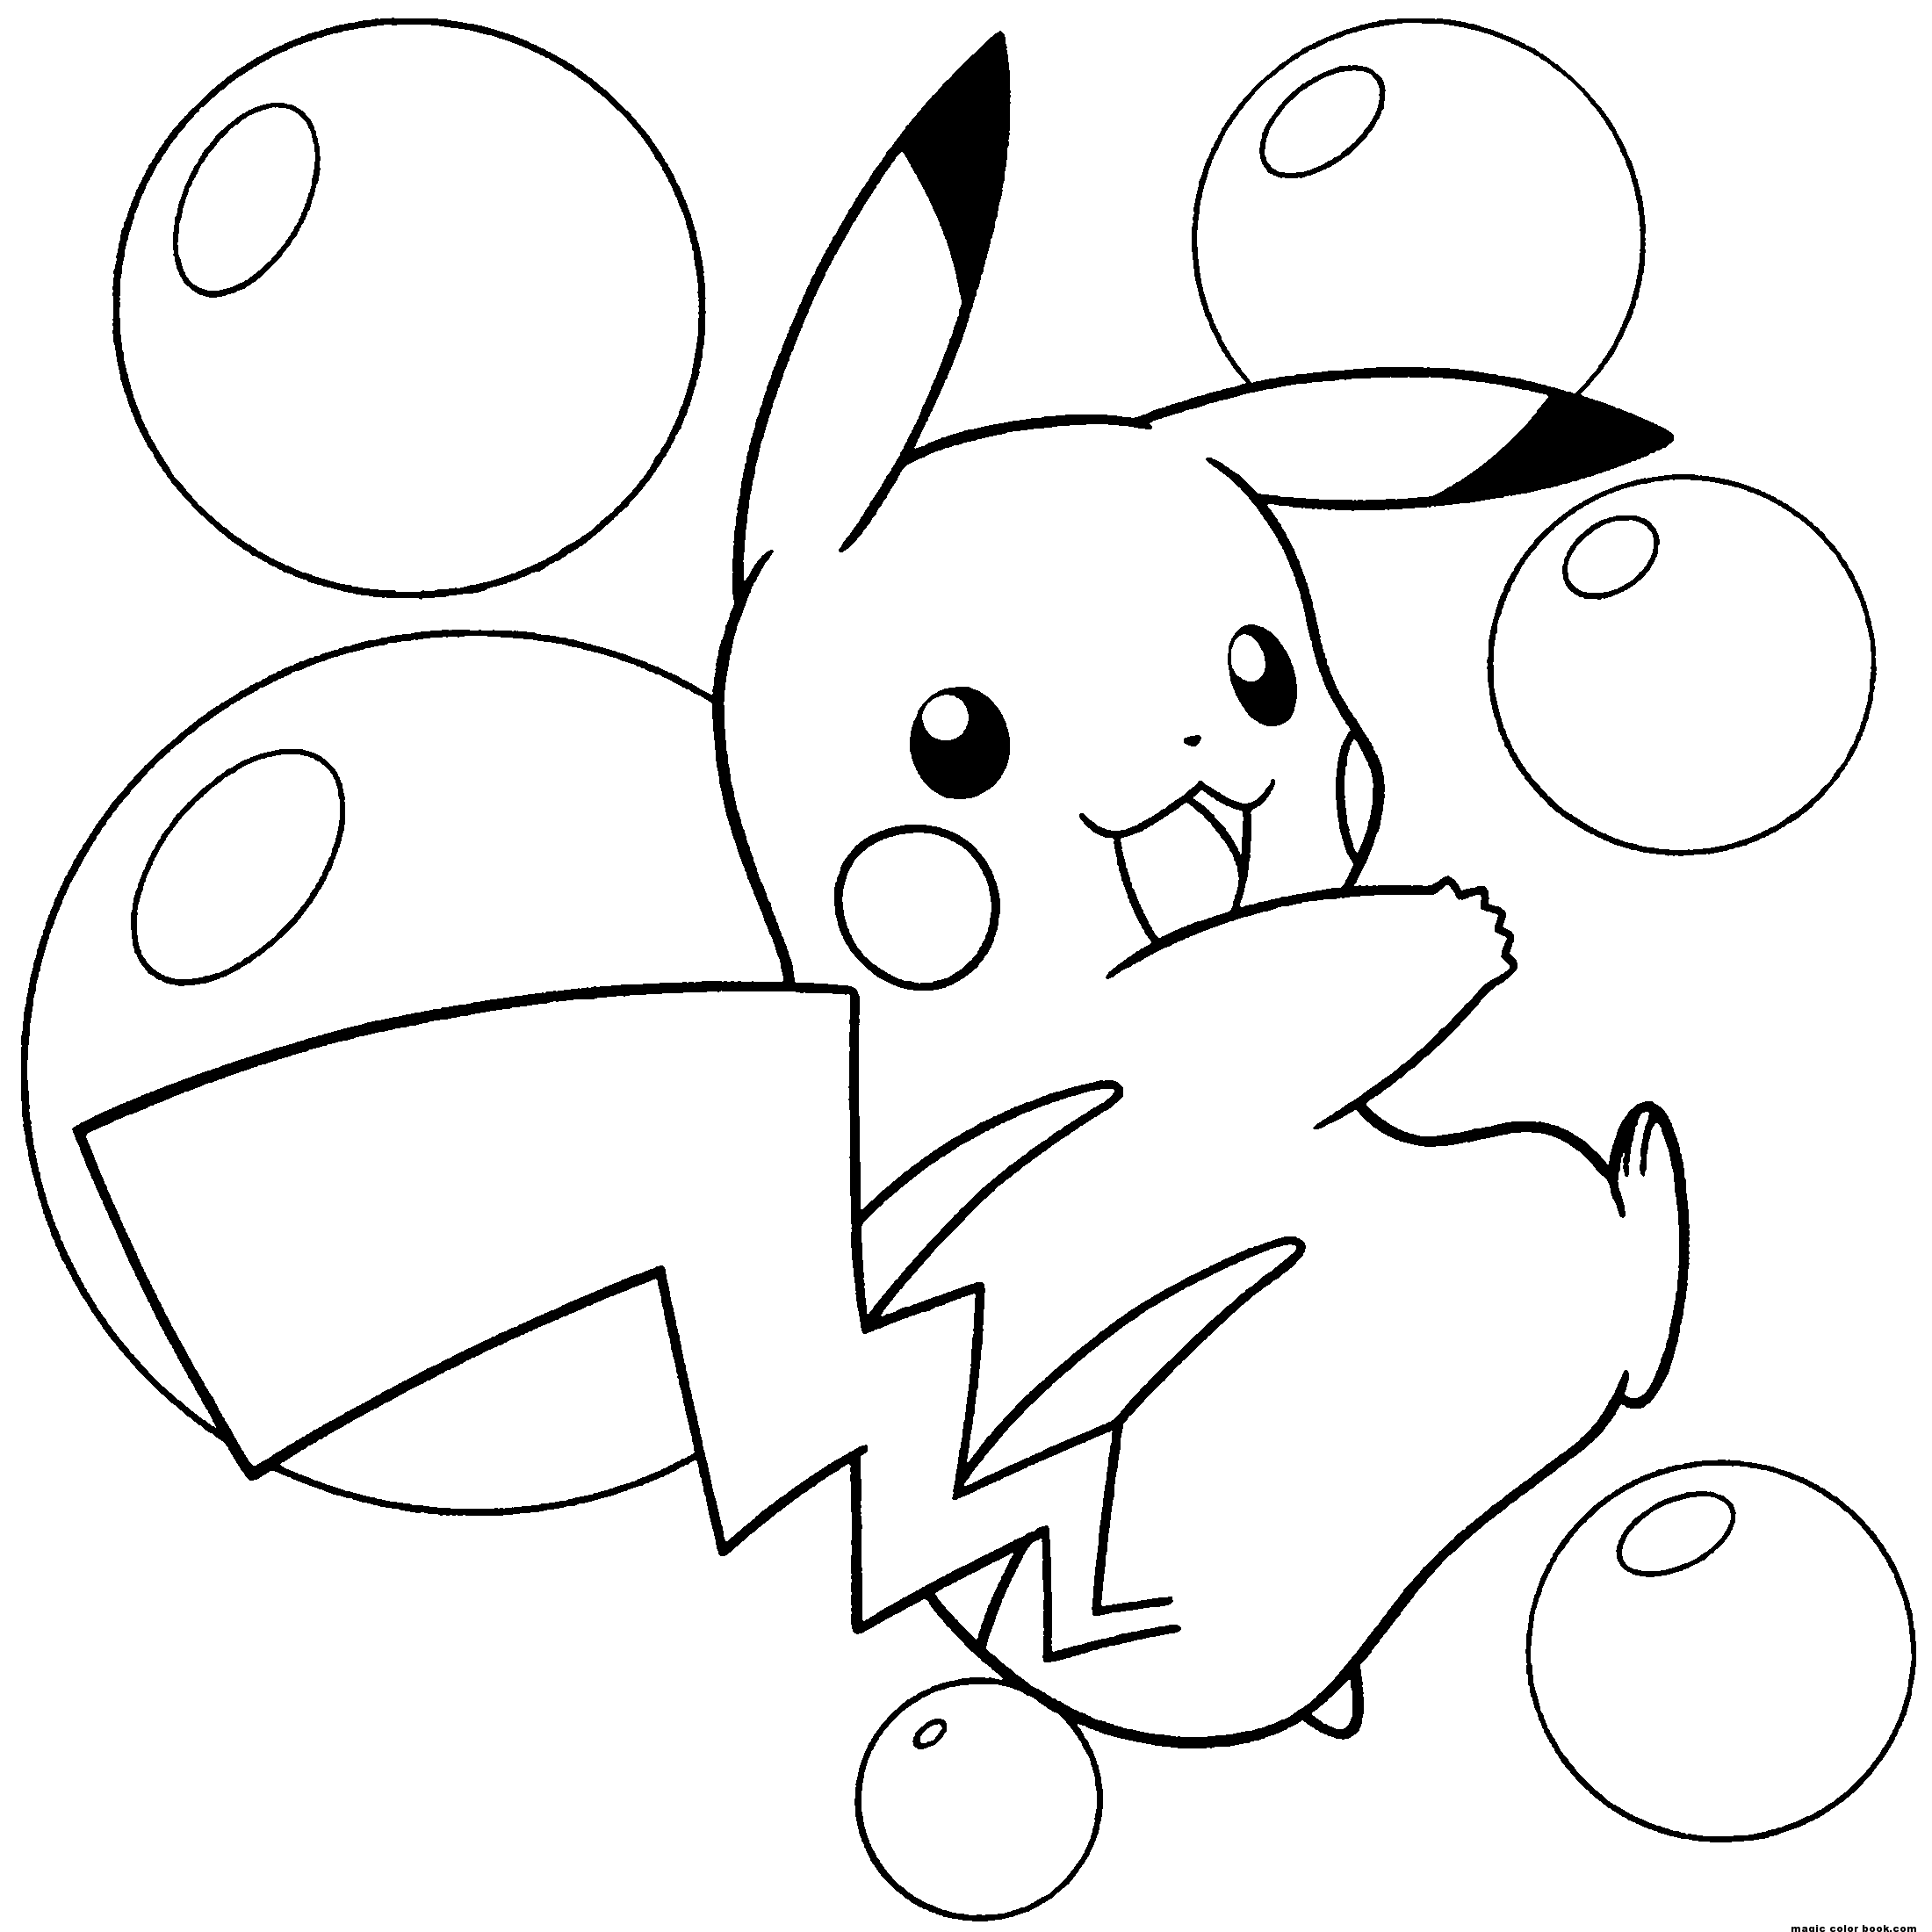 Pokemon coloring page to download for free